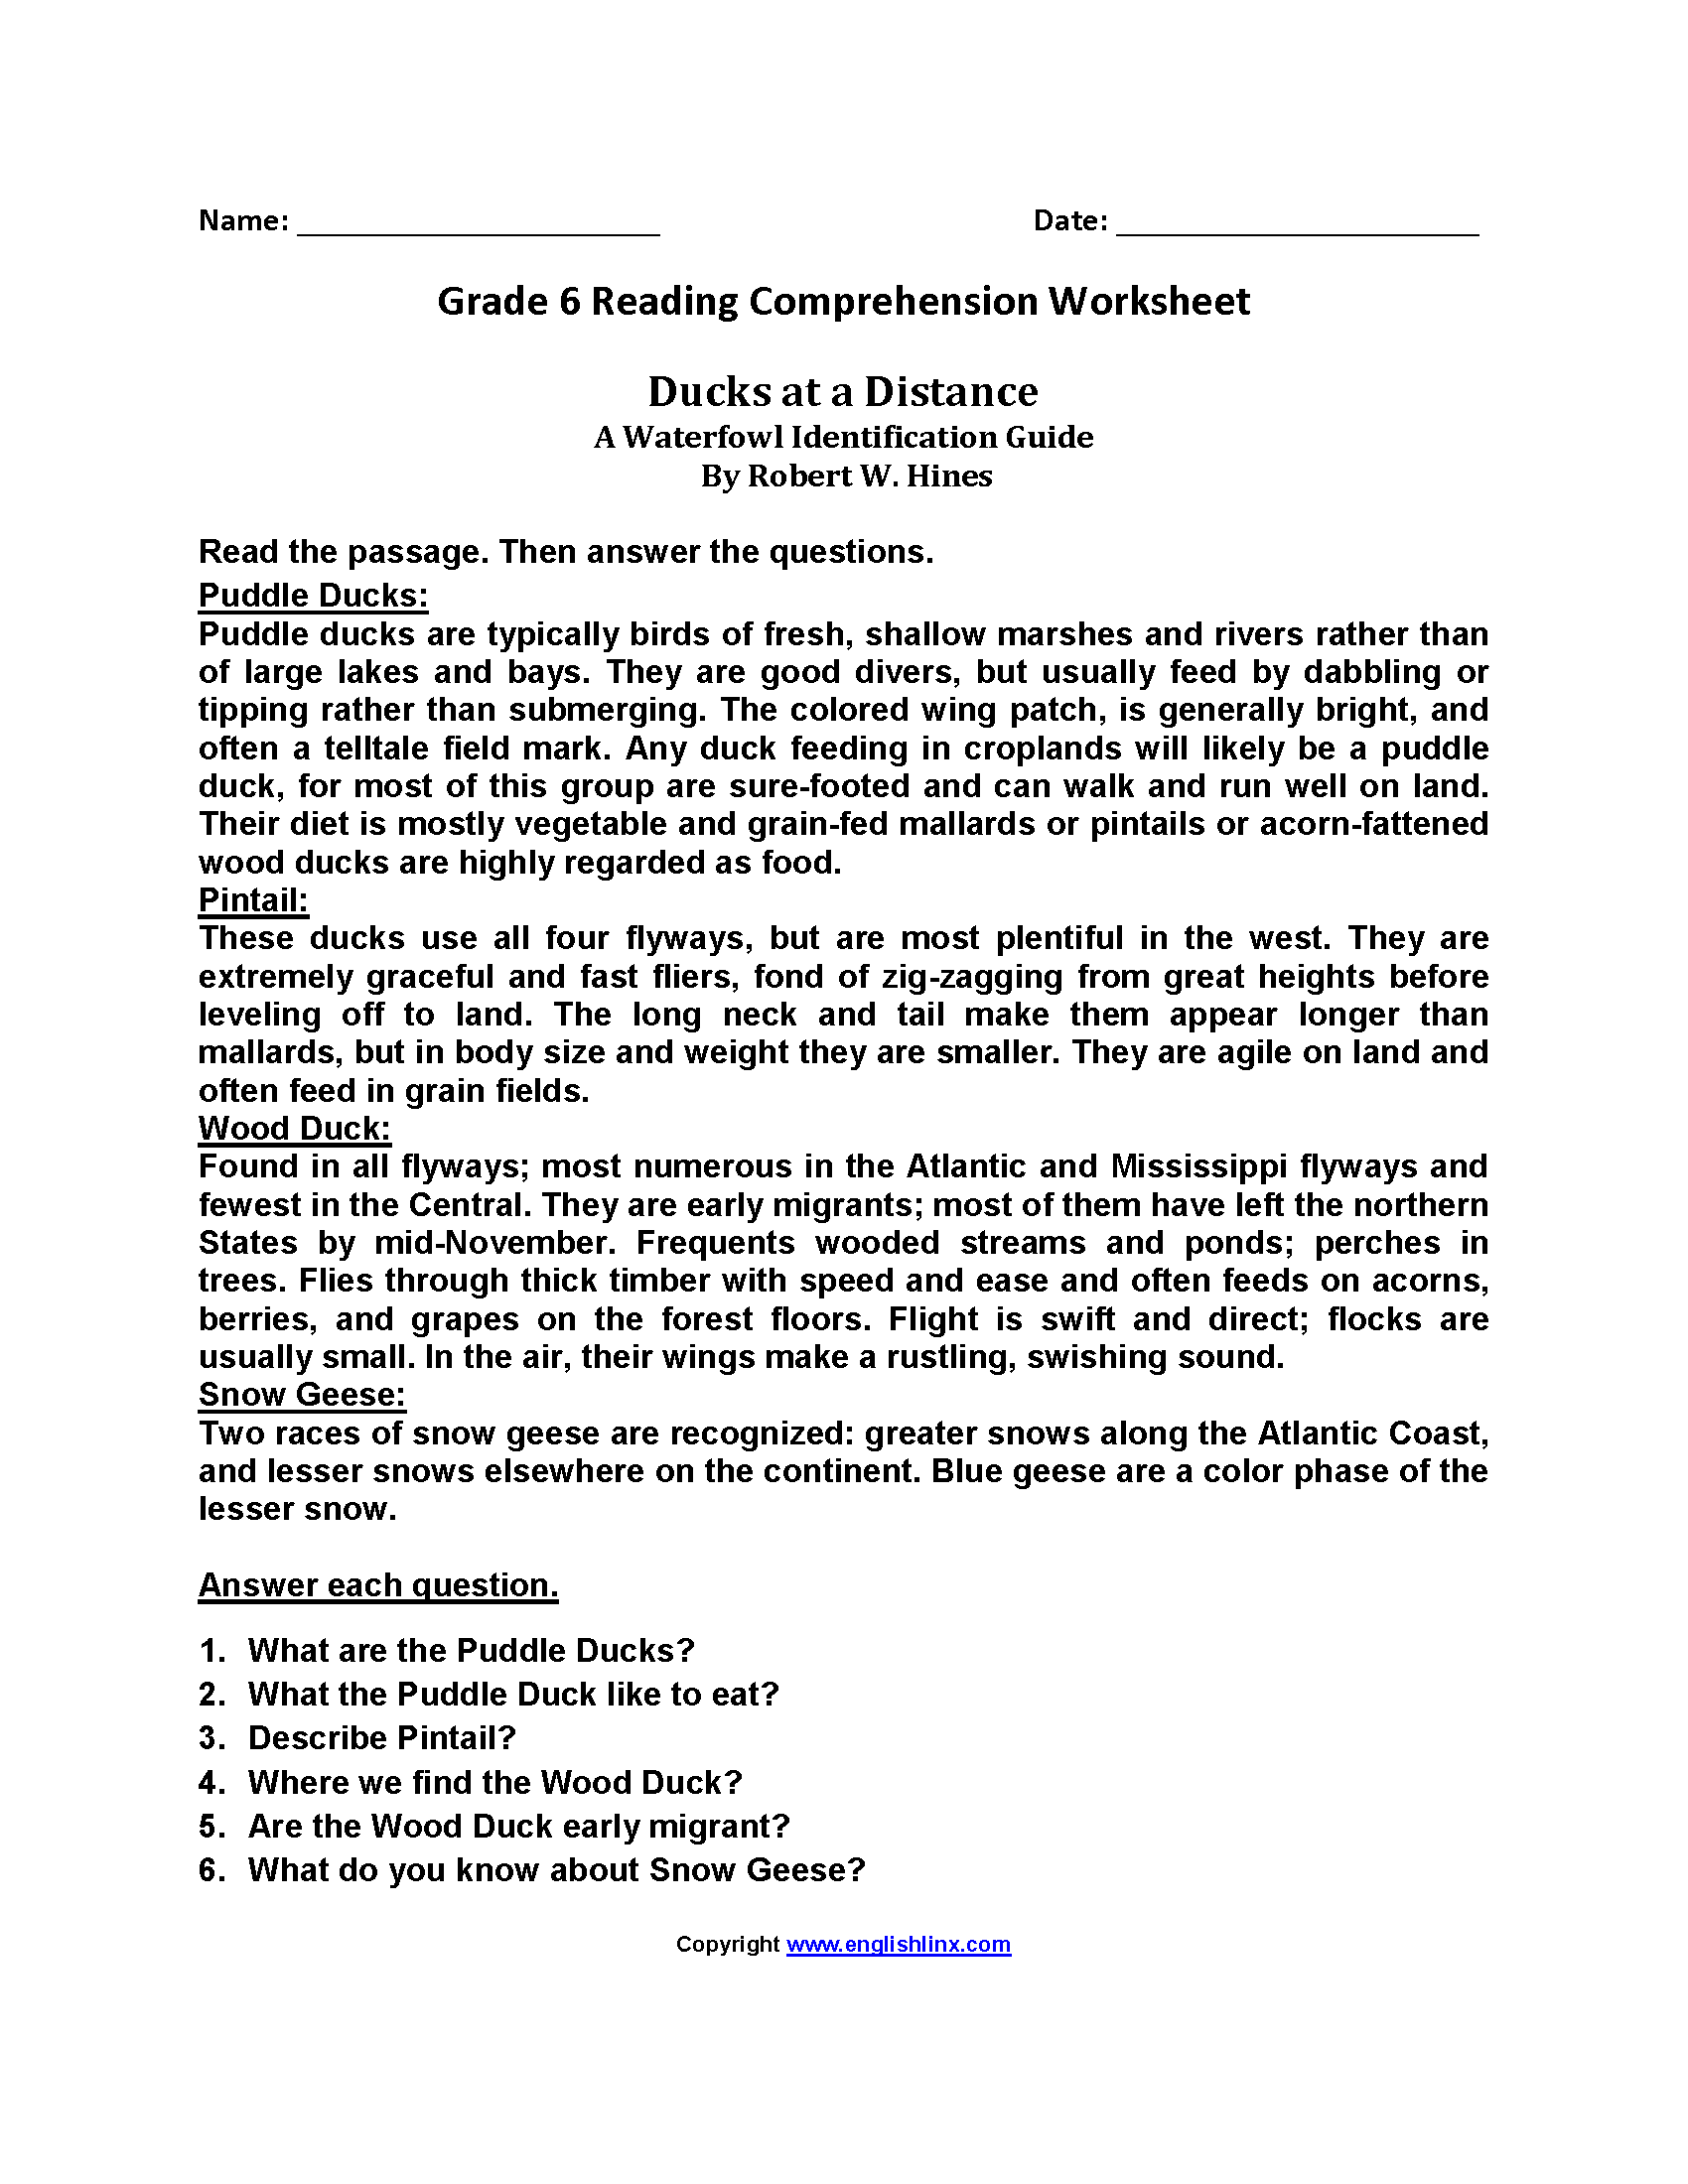 Printables Of Comprehension For Grade 6 With Questions